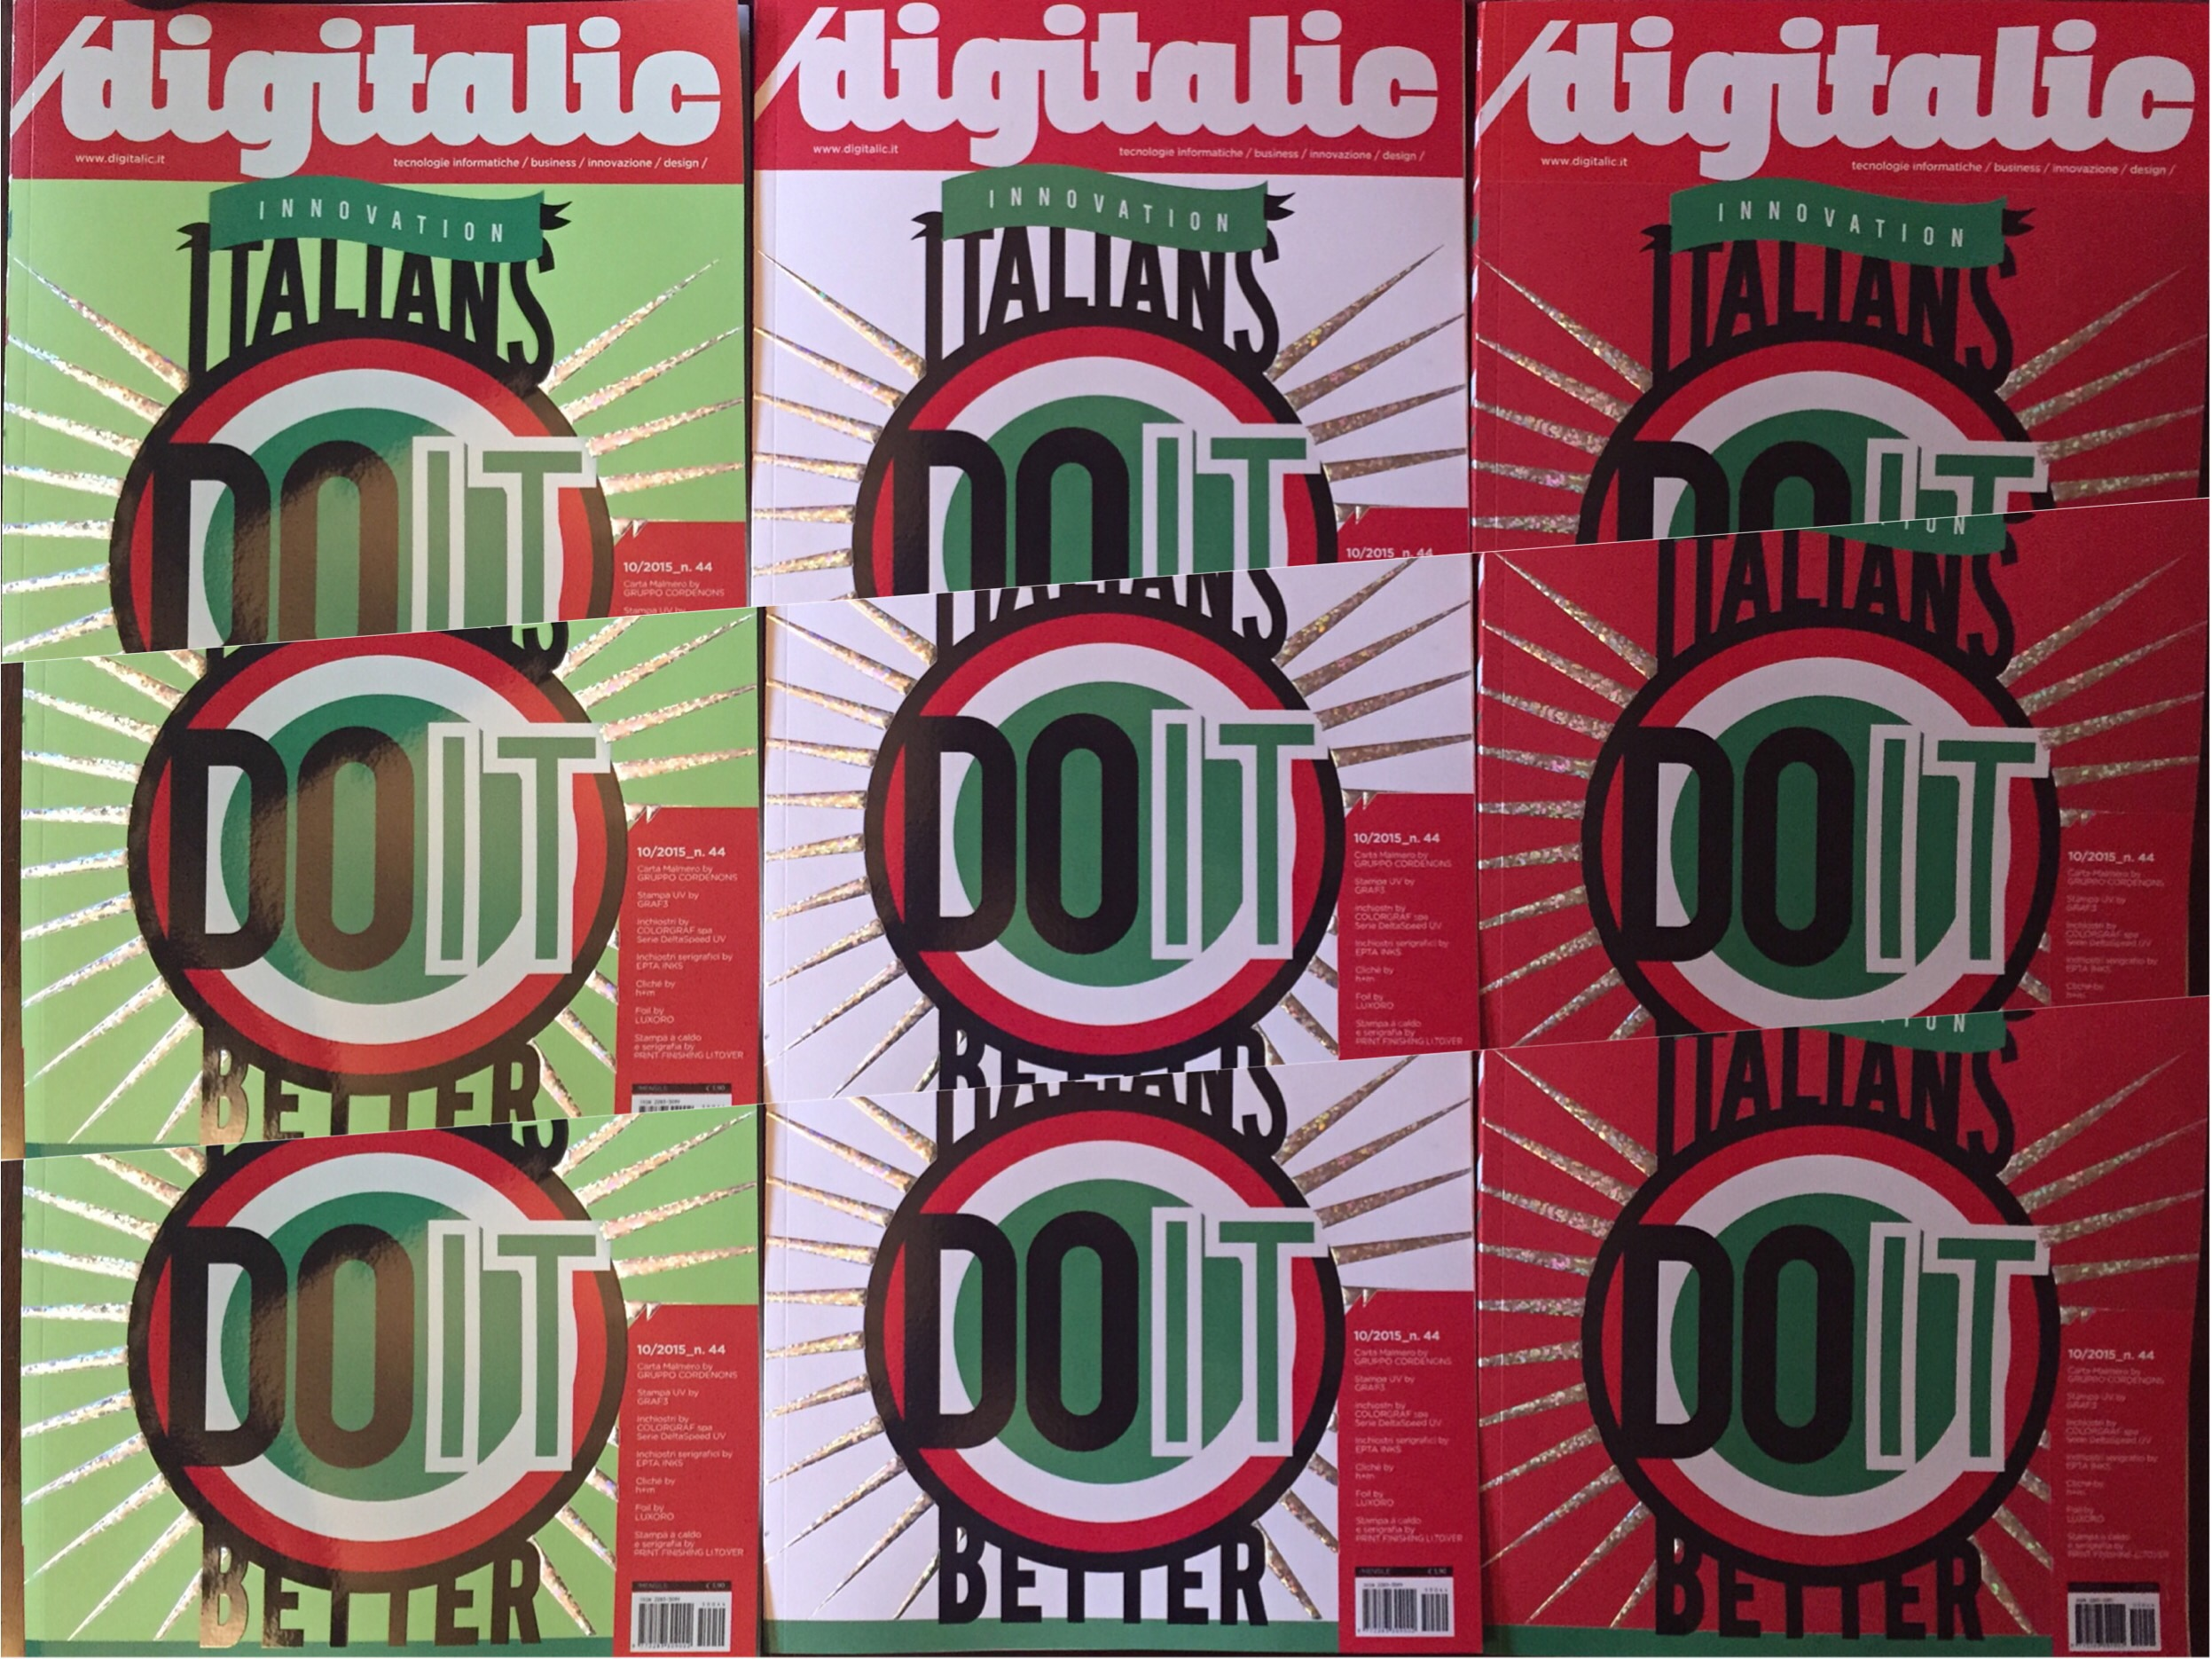 "Digitalic n. 44 ""Italians do IT better"" – Lo puoi fare meglio"